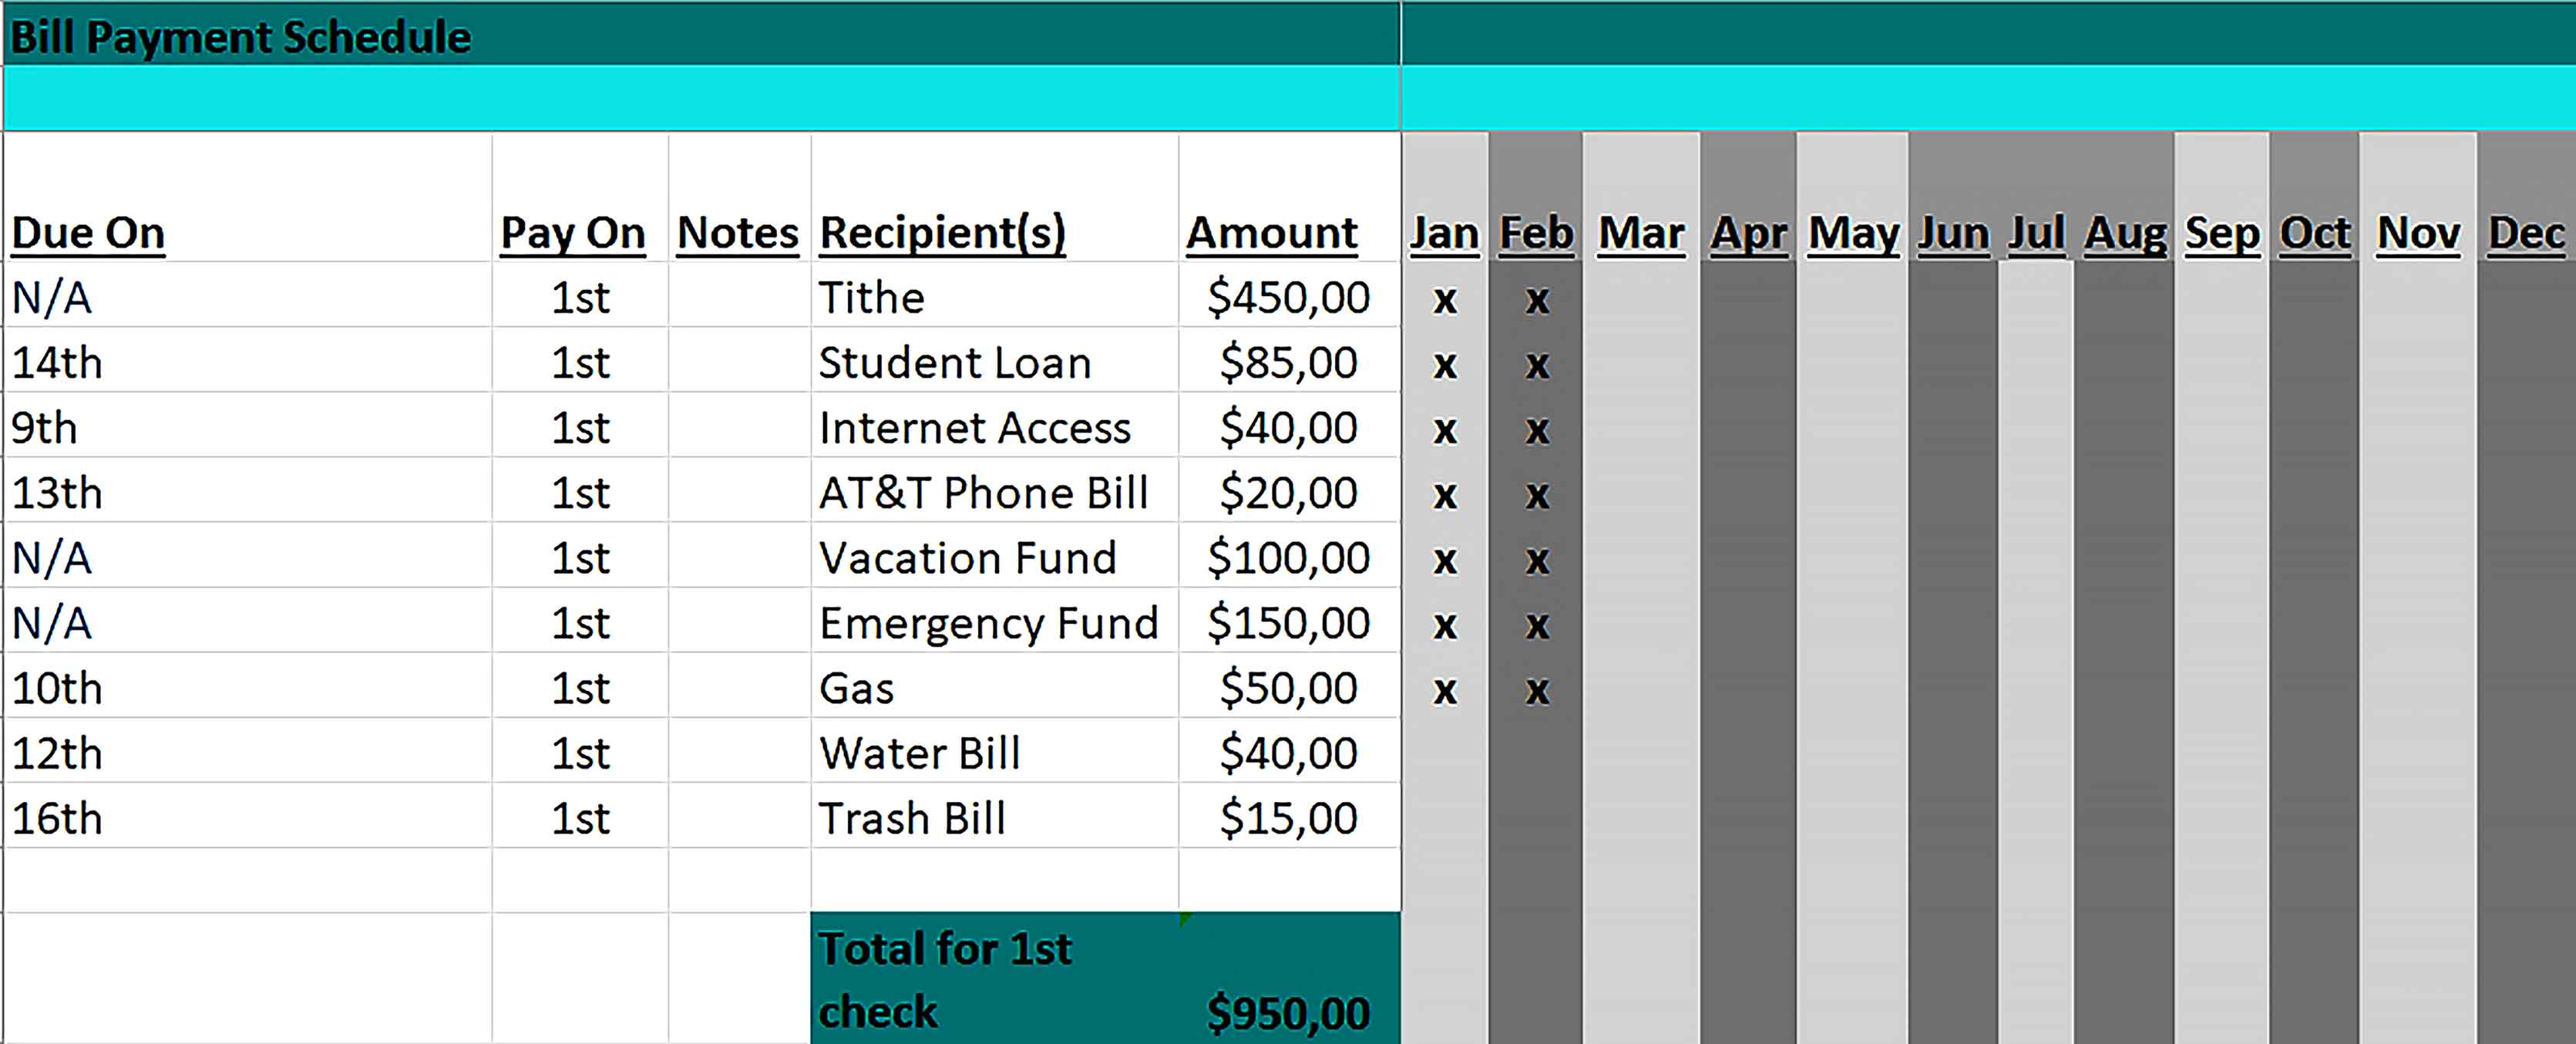 Template Bill Payment Schedule Excel Format Sample